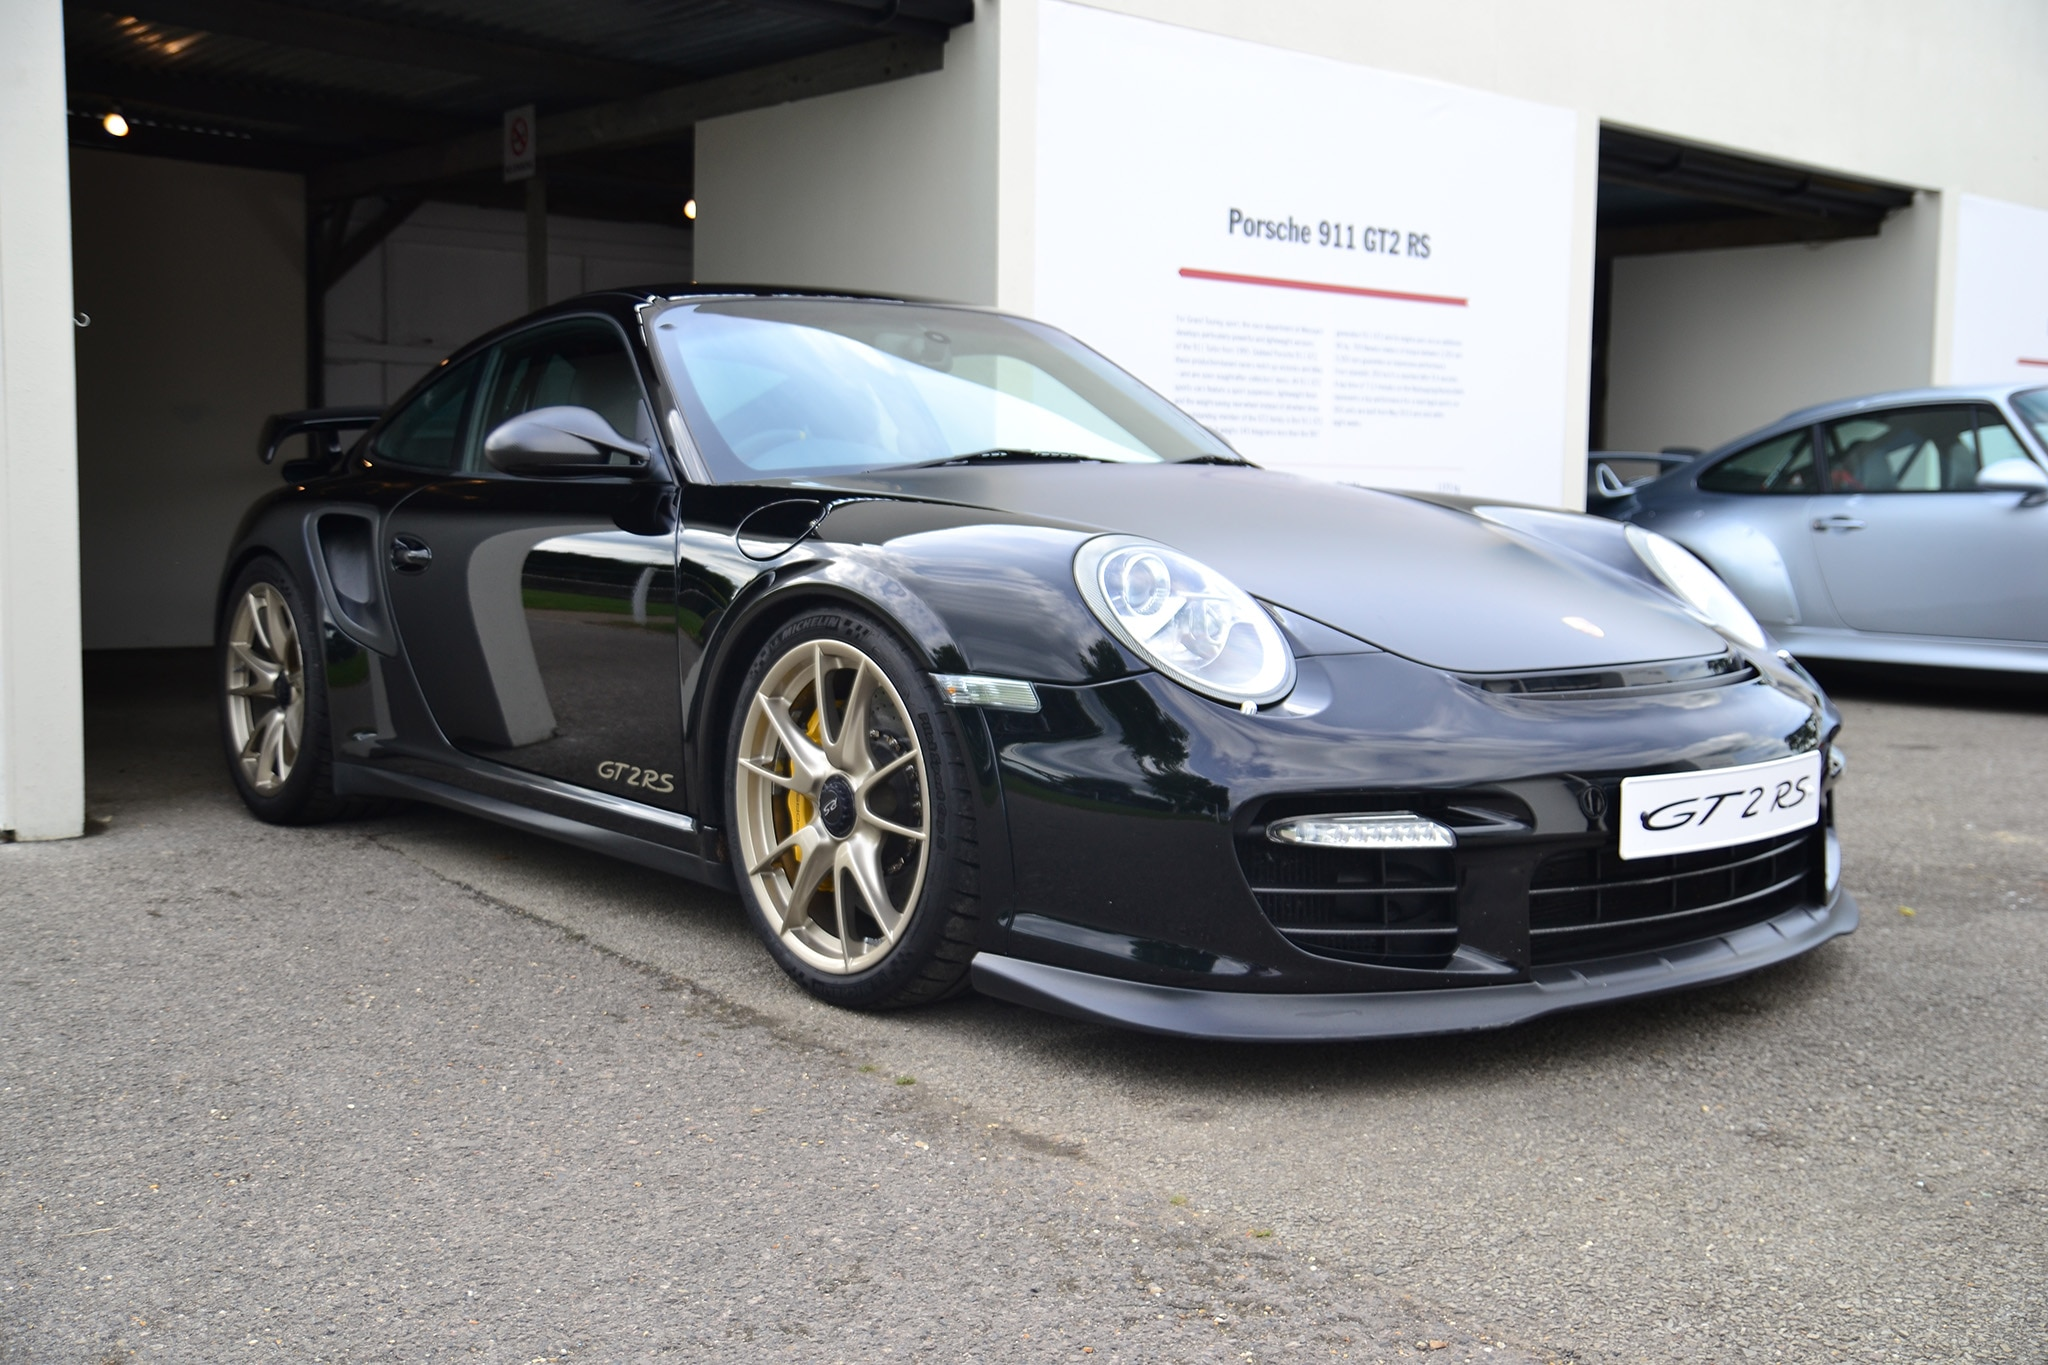 2010-Porsche-911-GT2-RS-Goodwood Breathtaking How Many Porsche 911 Gt2 Were Made Cars Trend